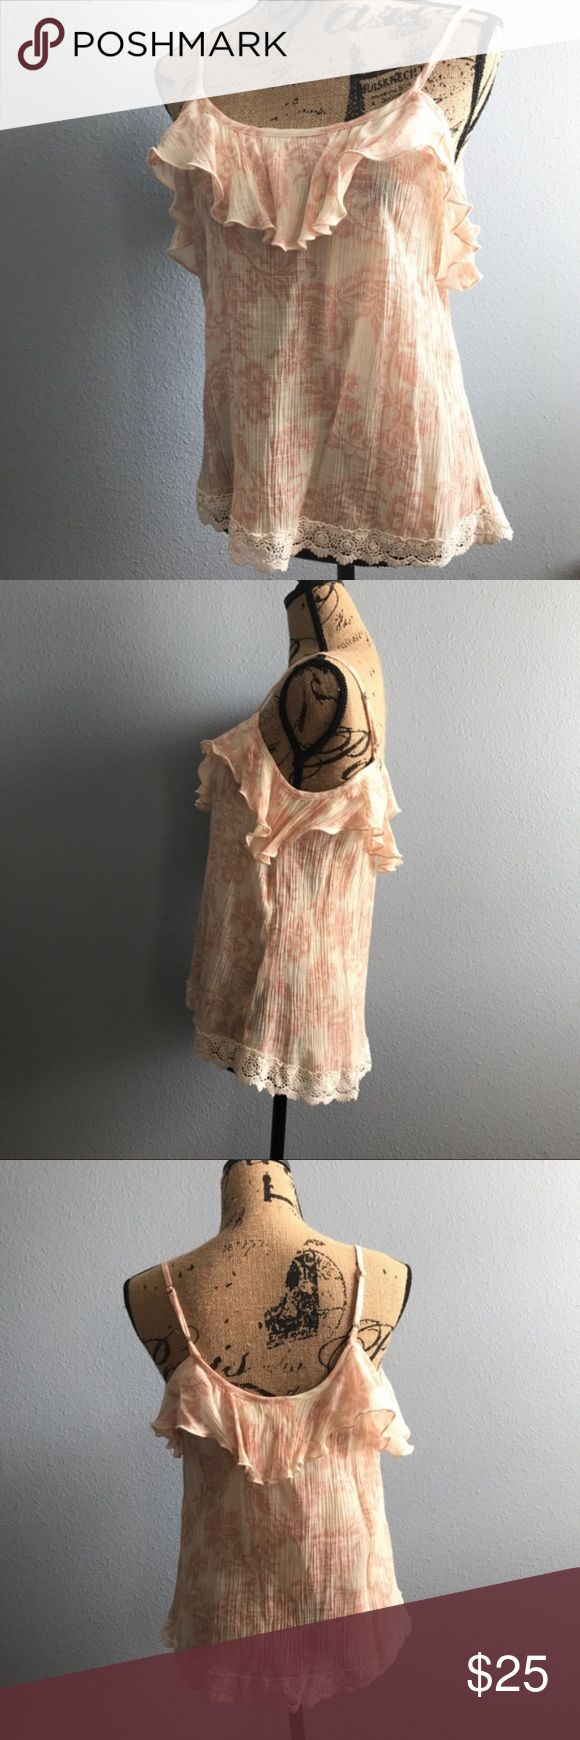 """Sun & Shadow Cold Shoulder Top Sun & Shadow Cold Shoulder Tank, Ivory and Blush Floral top, Size Medium, adjustable straps, EUC-Like New, smoke free home.   Measurements are approx.  Length: 24""""  Chest: 30"""" Sun & Shadow Tops Blouses"""